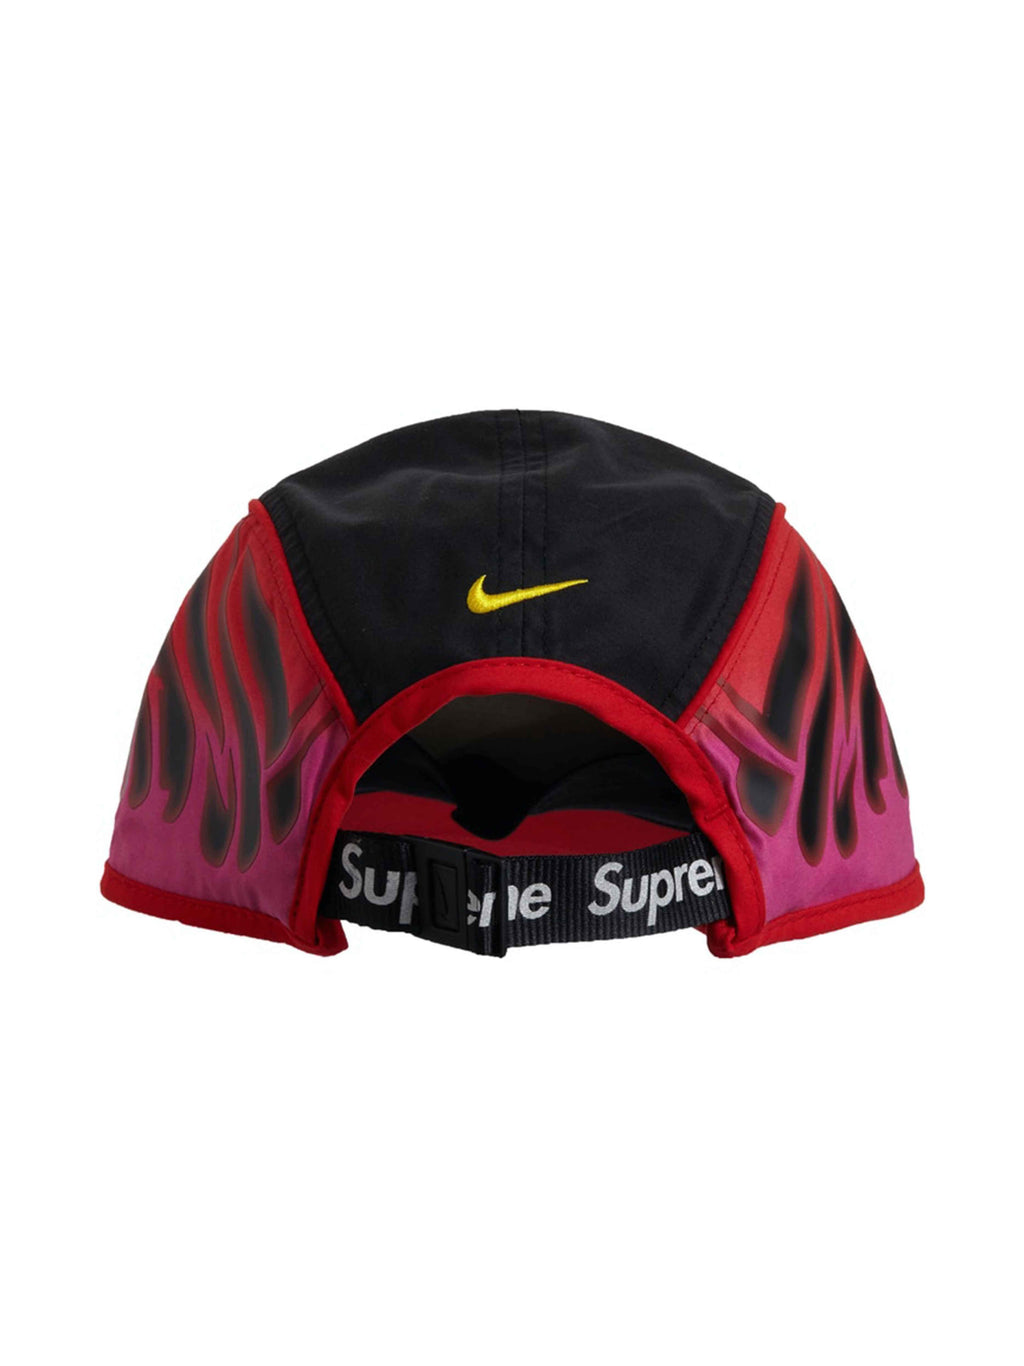 Supreme Nike Air Max Plus Running Hat Black [FW20] - PRIOR